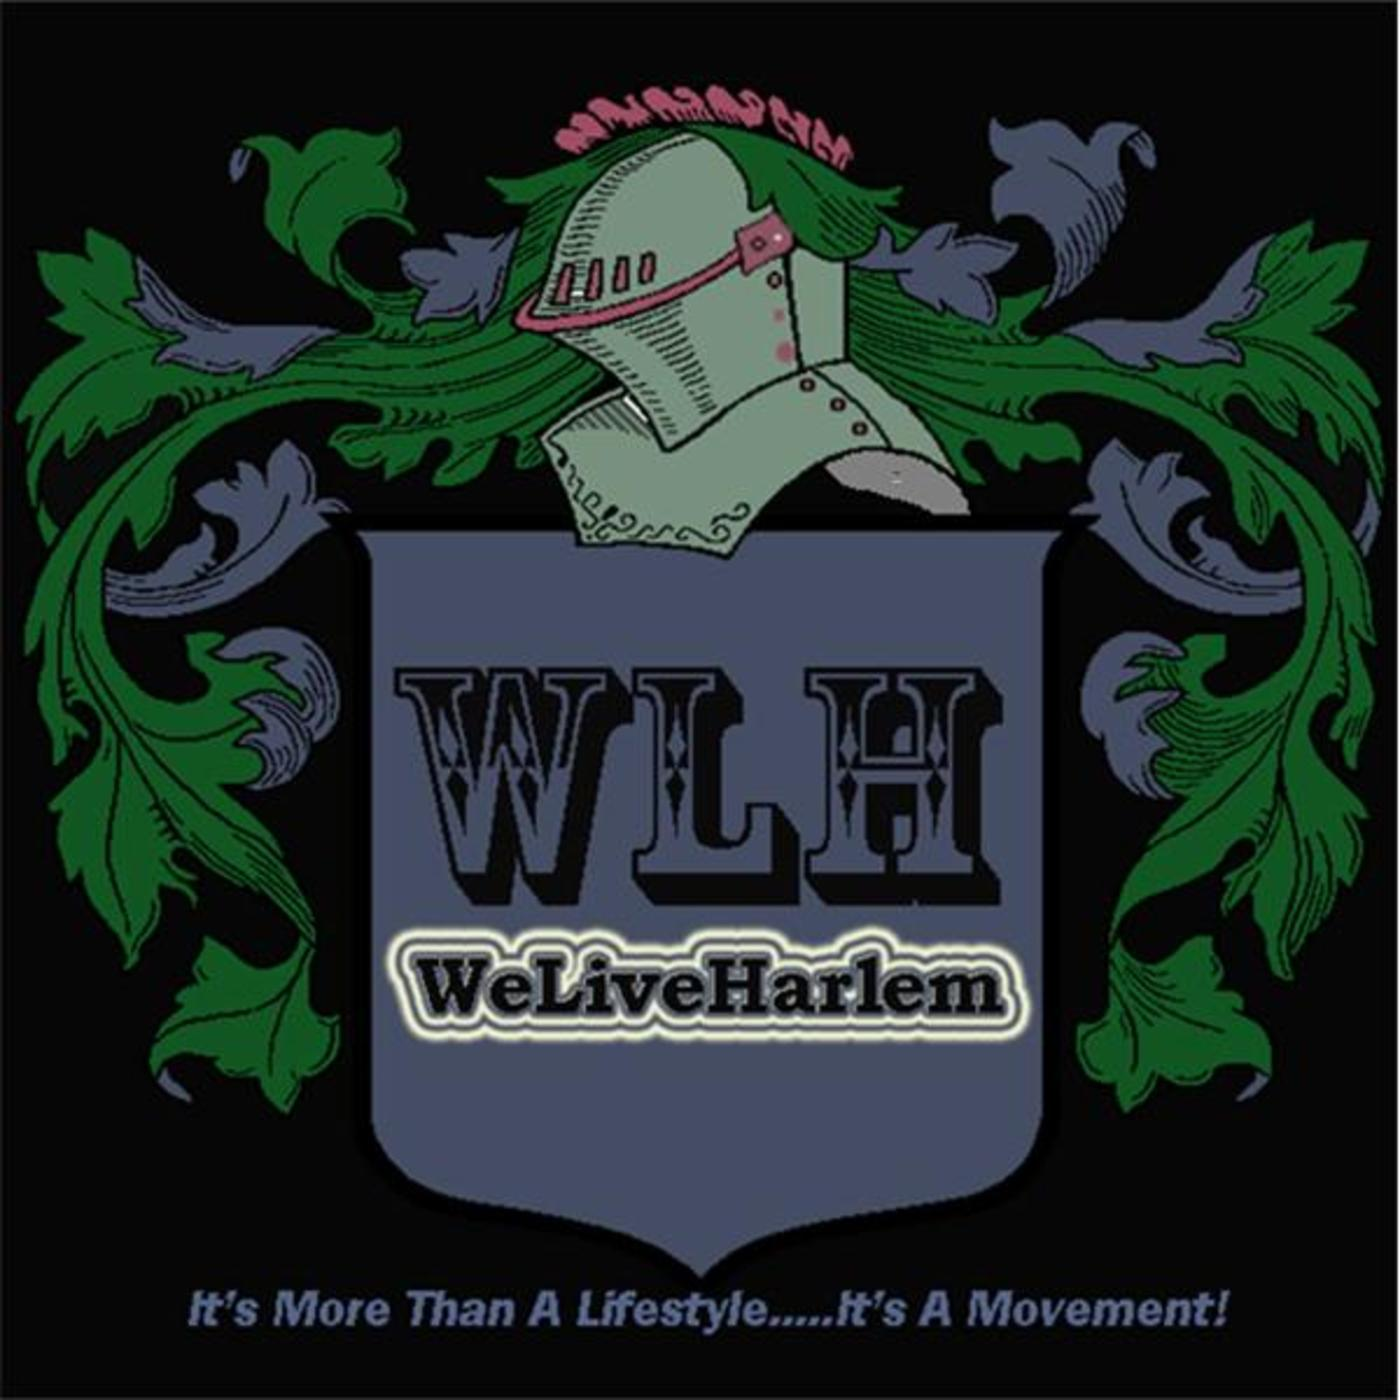 WLH WELIVEHARLEM - Its more than a lifestyle.... It's a Movement!